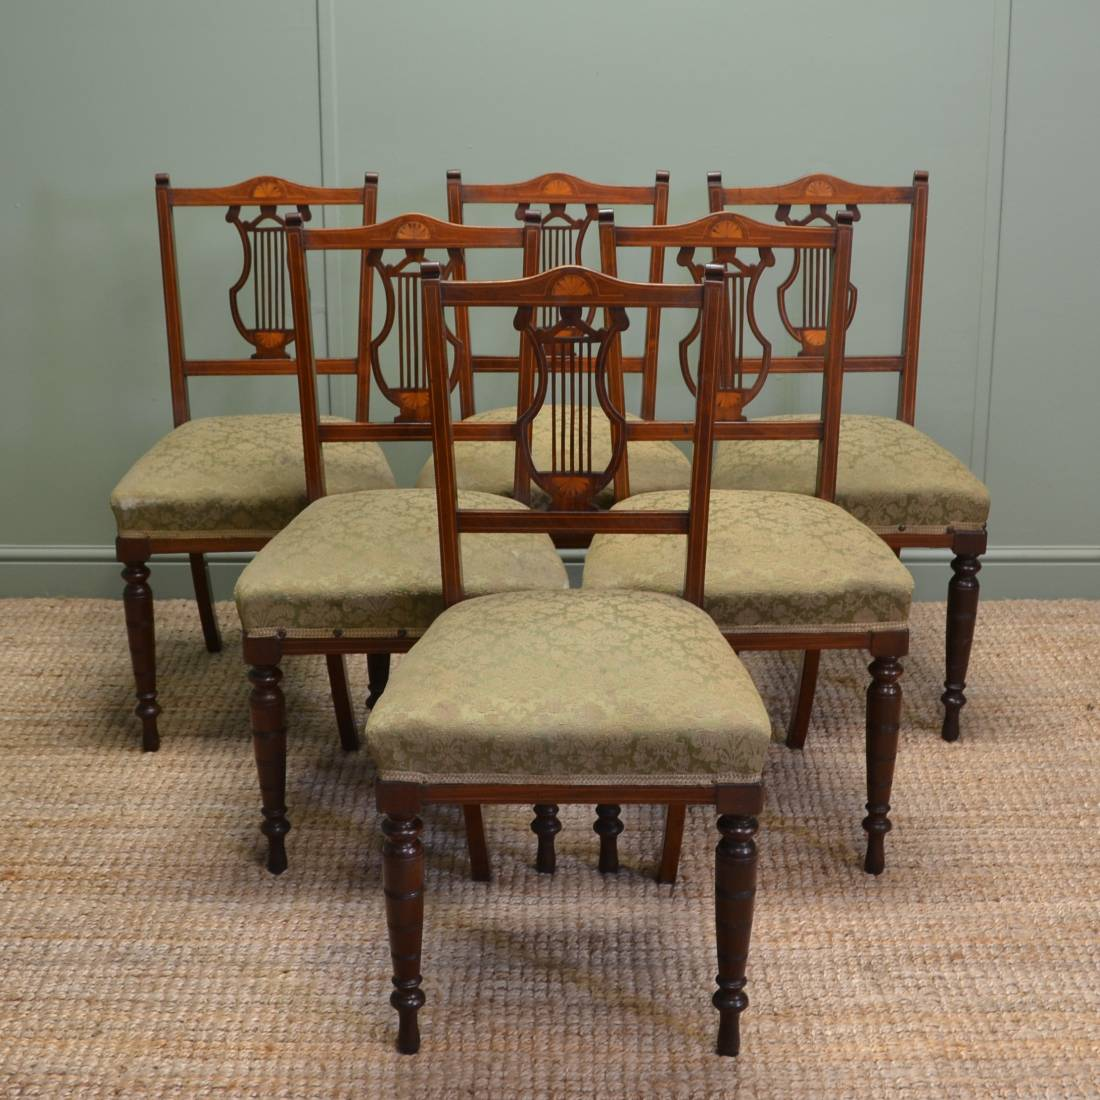 Set of 6 Inlaid Antique Edwardian Mahogany Dining Chairs